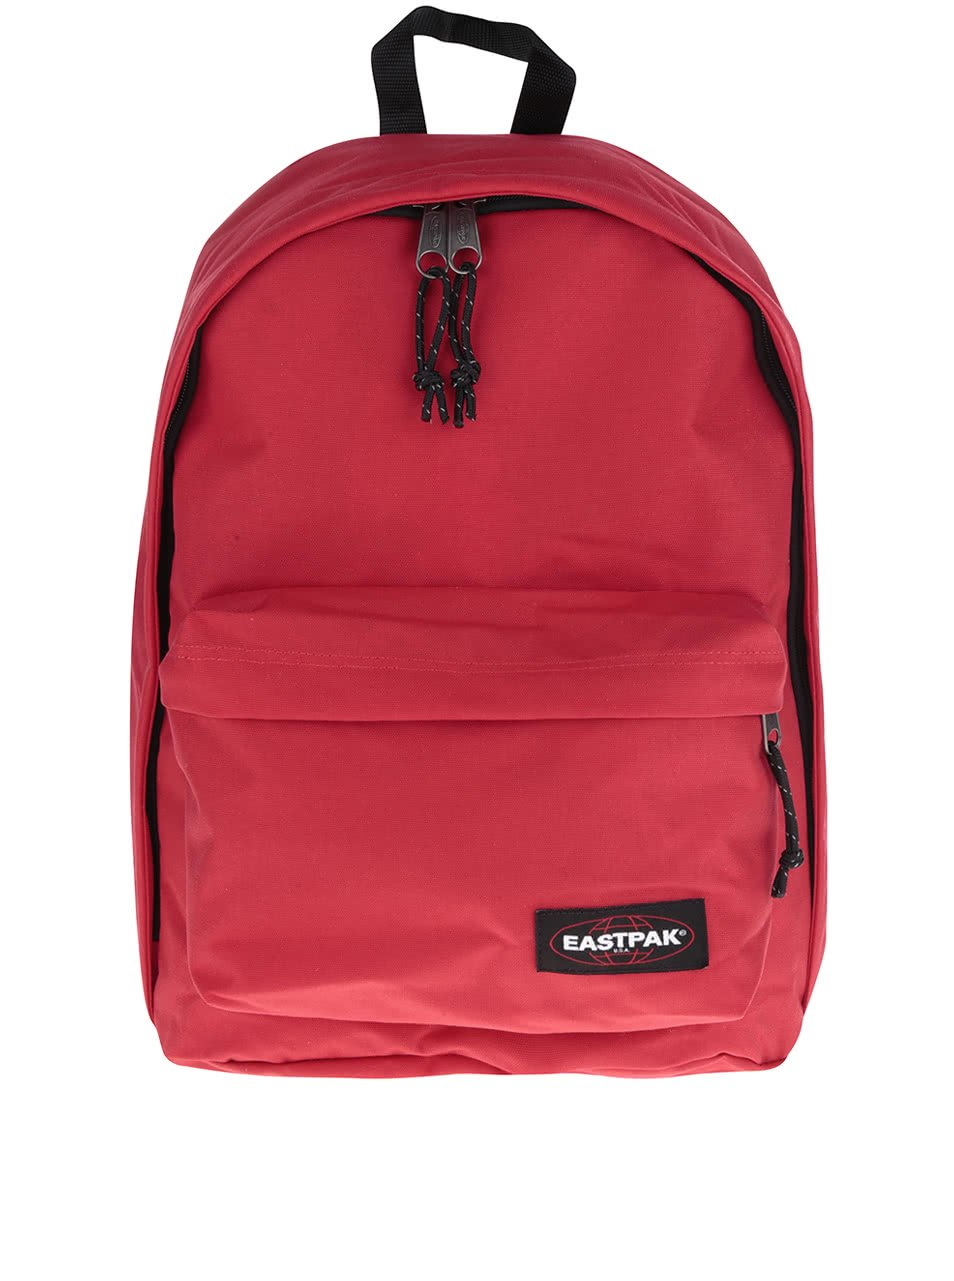 Červený batoh Eastpak Out of office